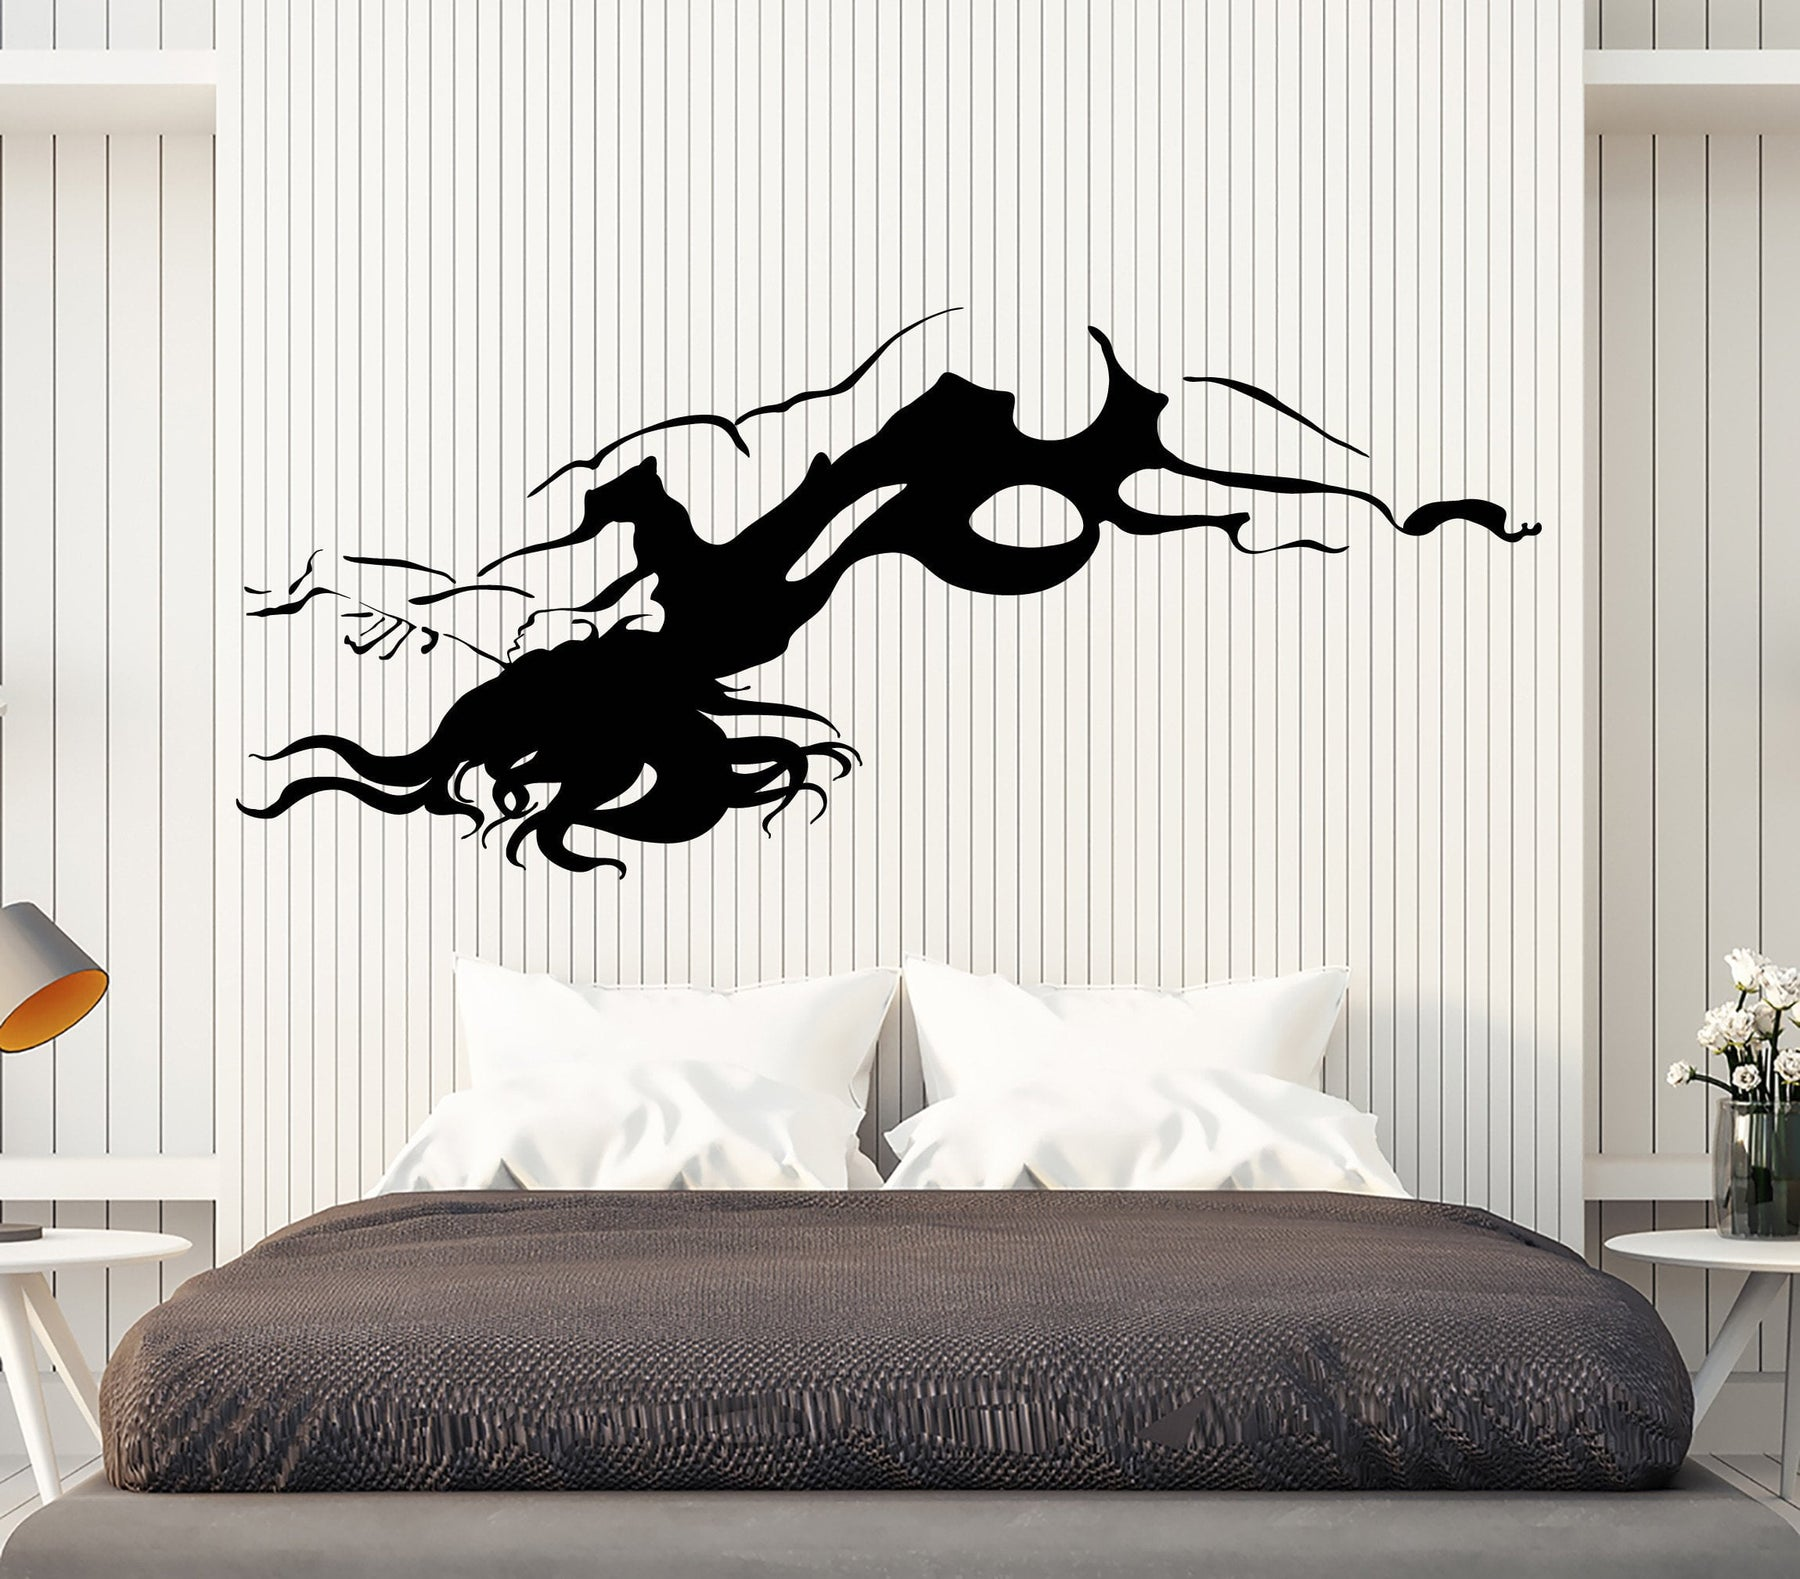 Vinyl Decal Wall Sticker Naked Nude Girl Woman Beauty Decoration Unique Gift (n742)